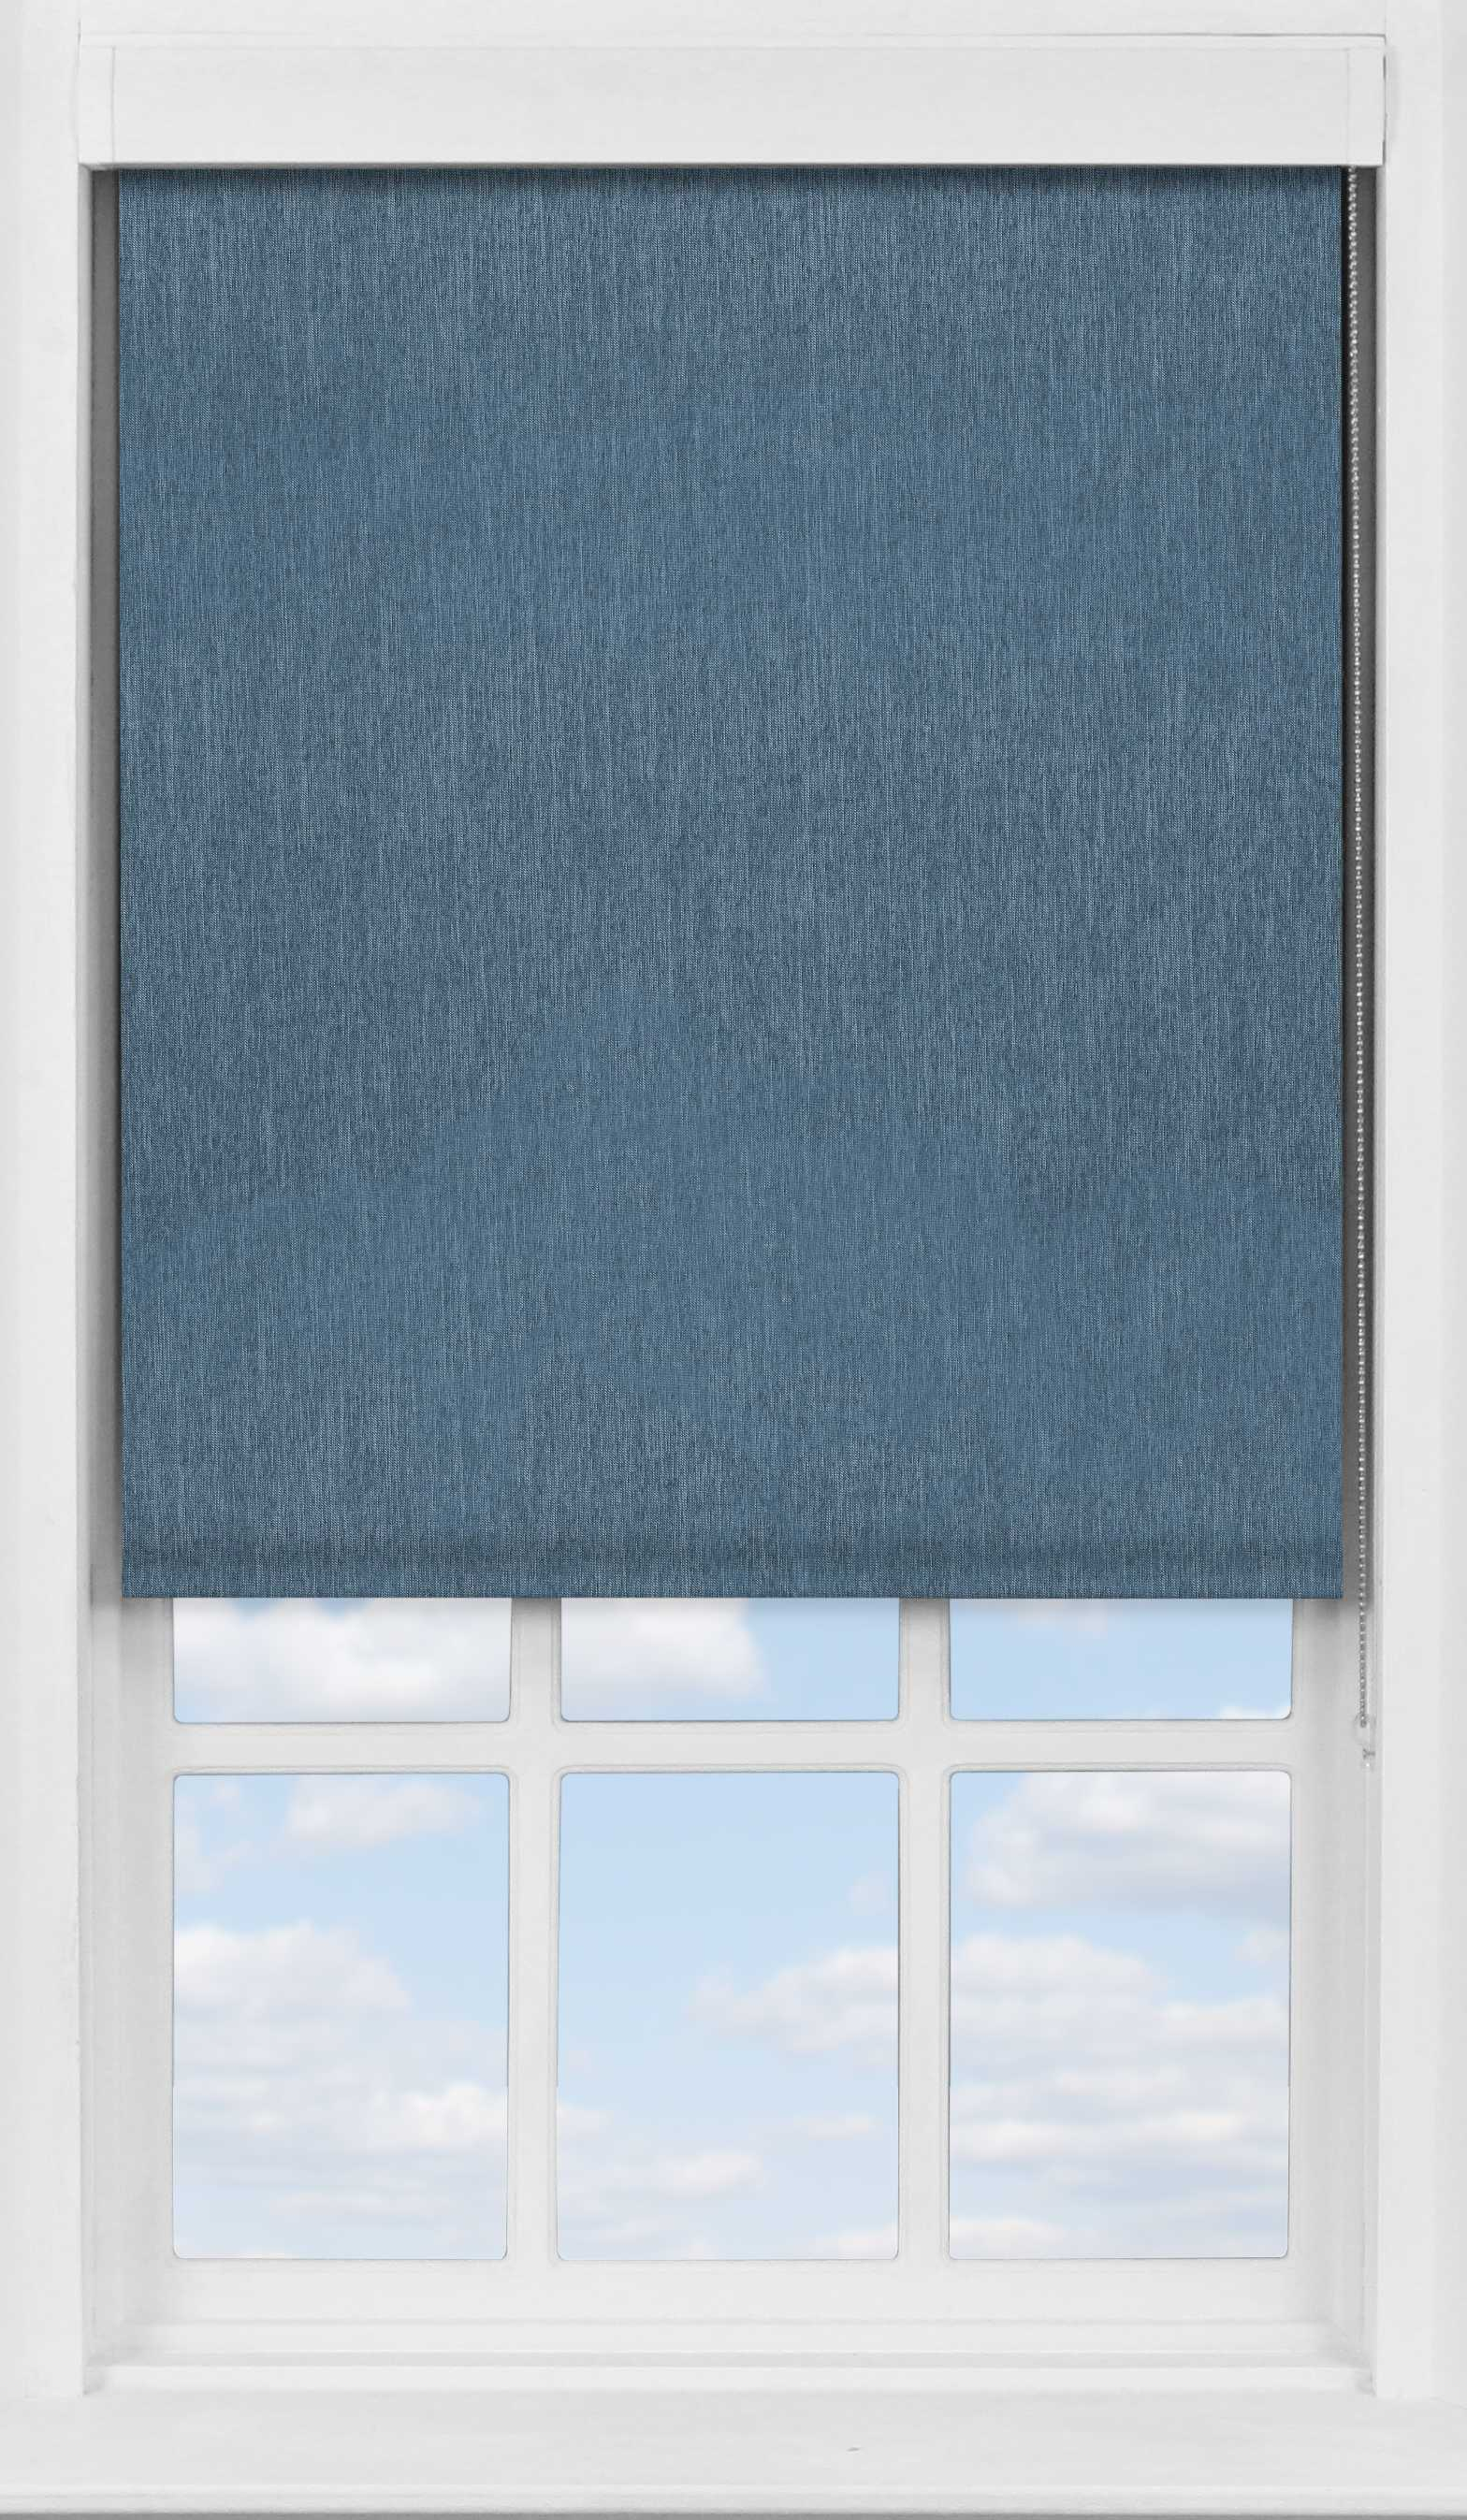 Premium Roller Blind in Sheek Indigo Translucent